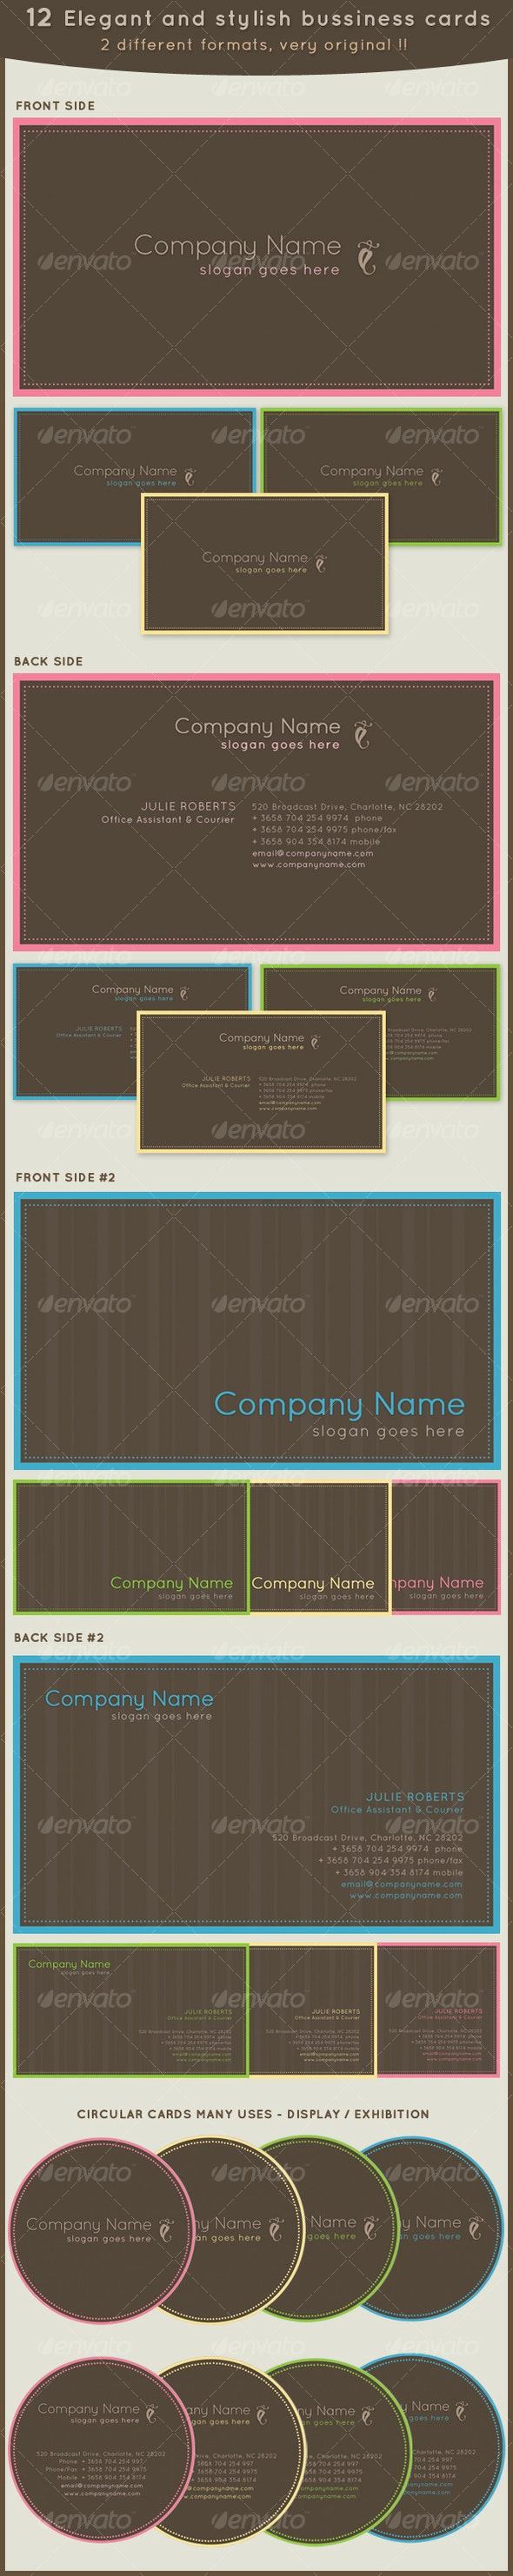 12 Elegant business cards 2 different formats! - Creative Business Cards